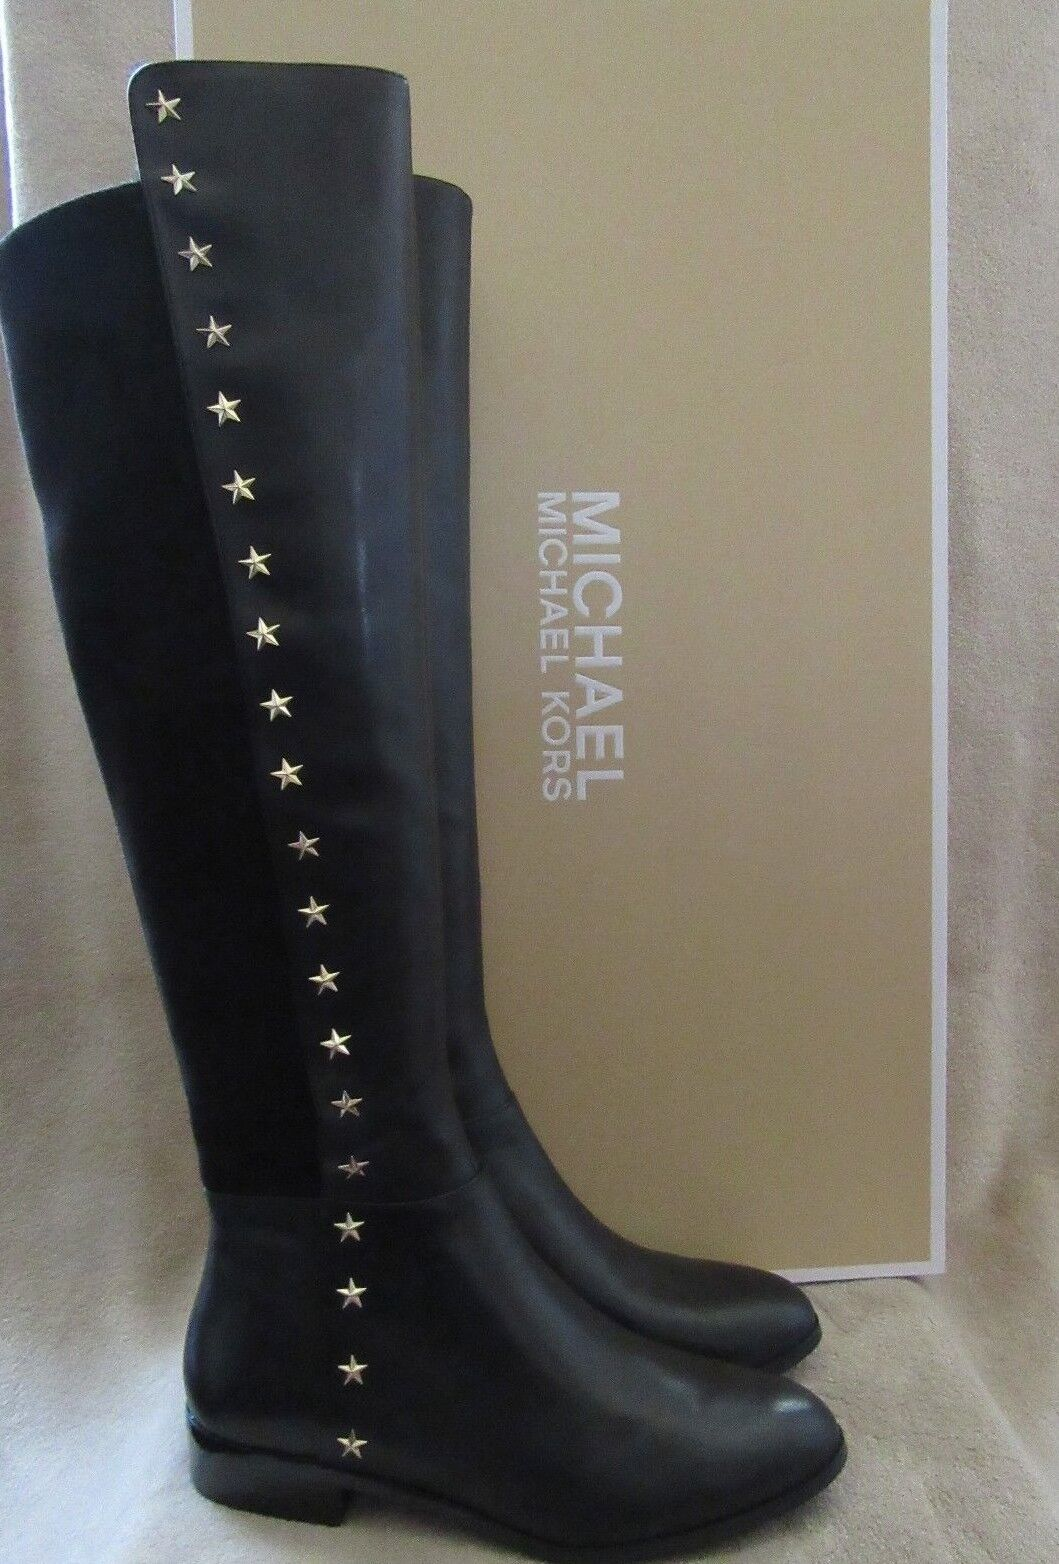 MICHAEL KORS Bromley Flat Star Studs Leather Riding Boots Shoes US 8 NWB